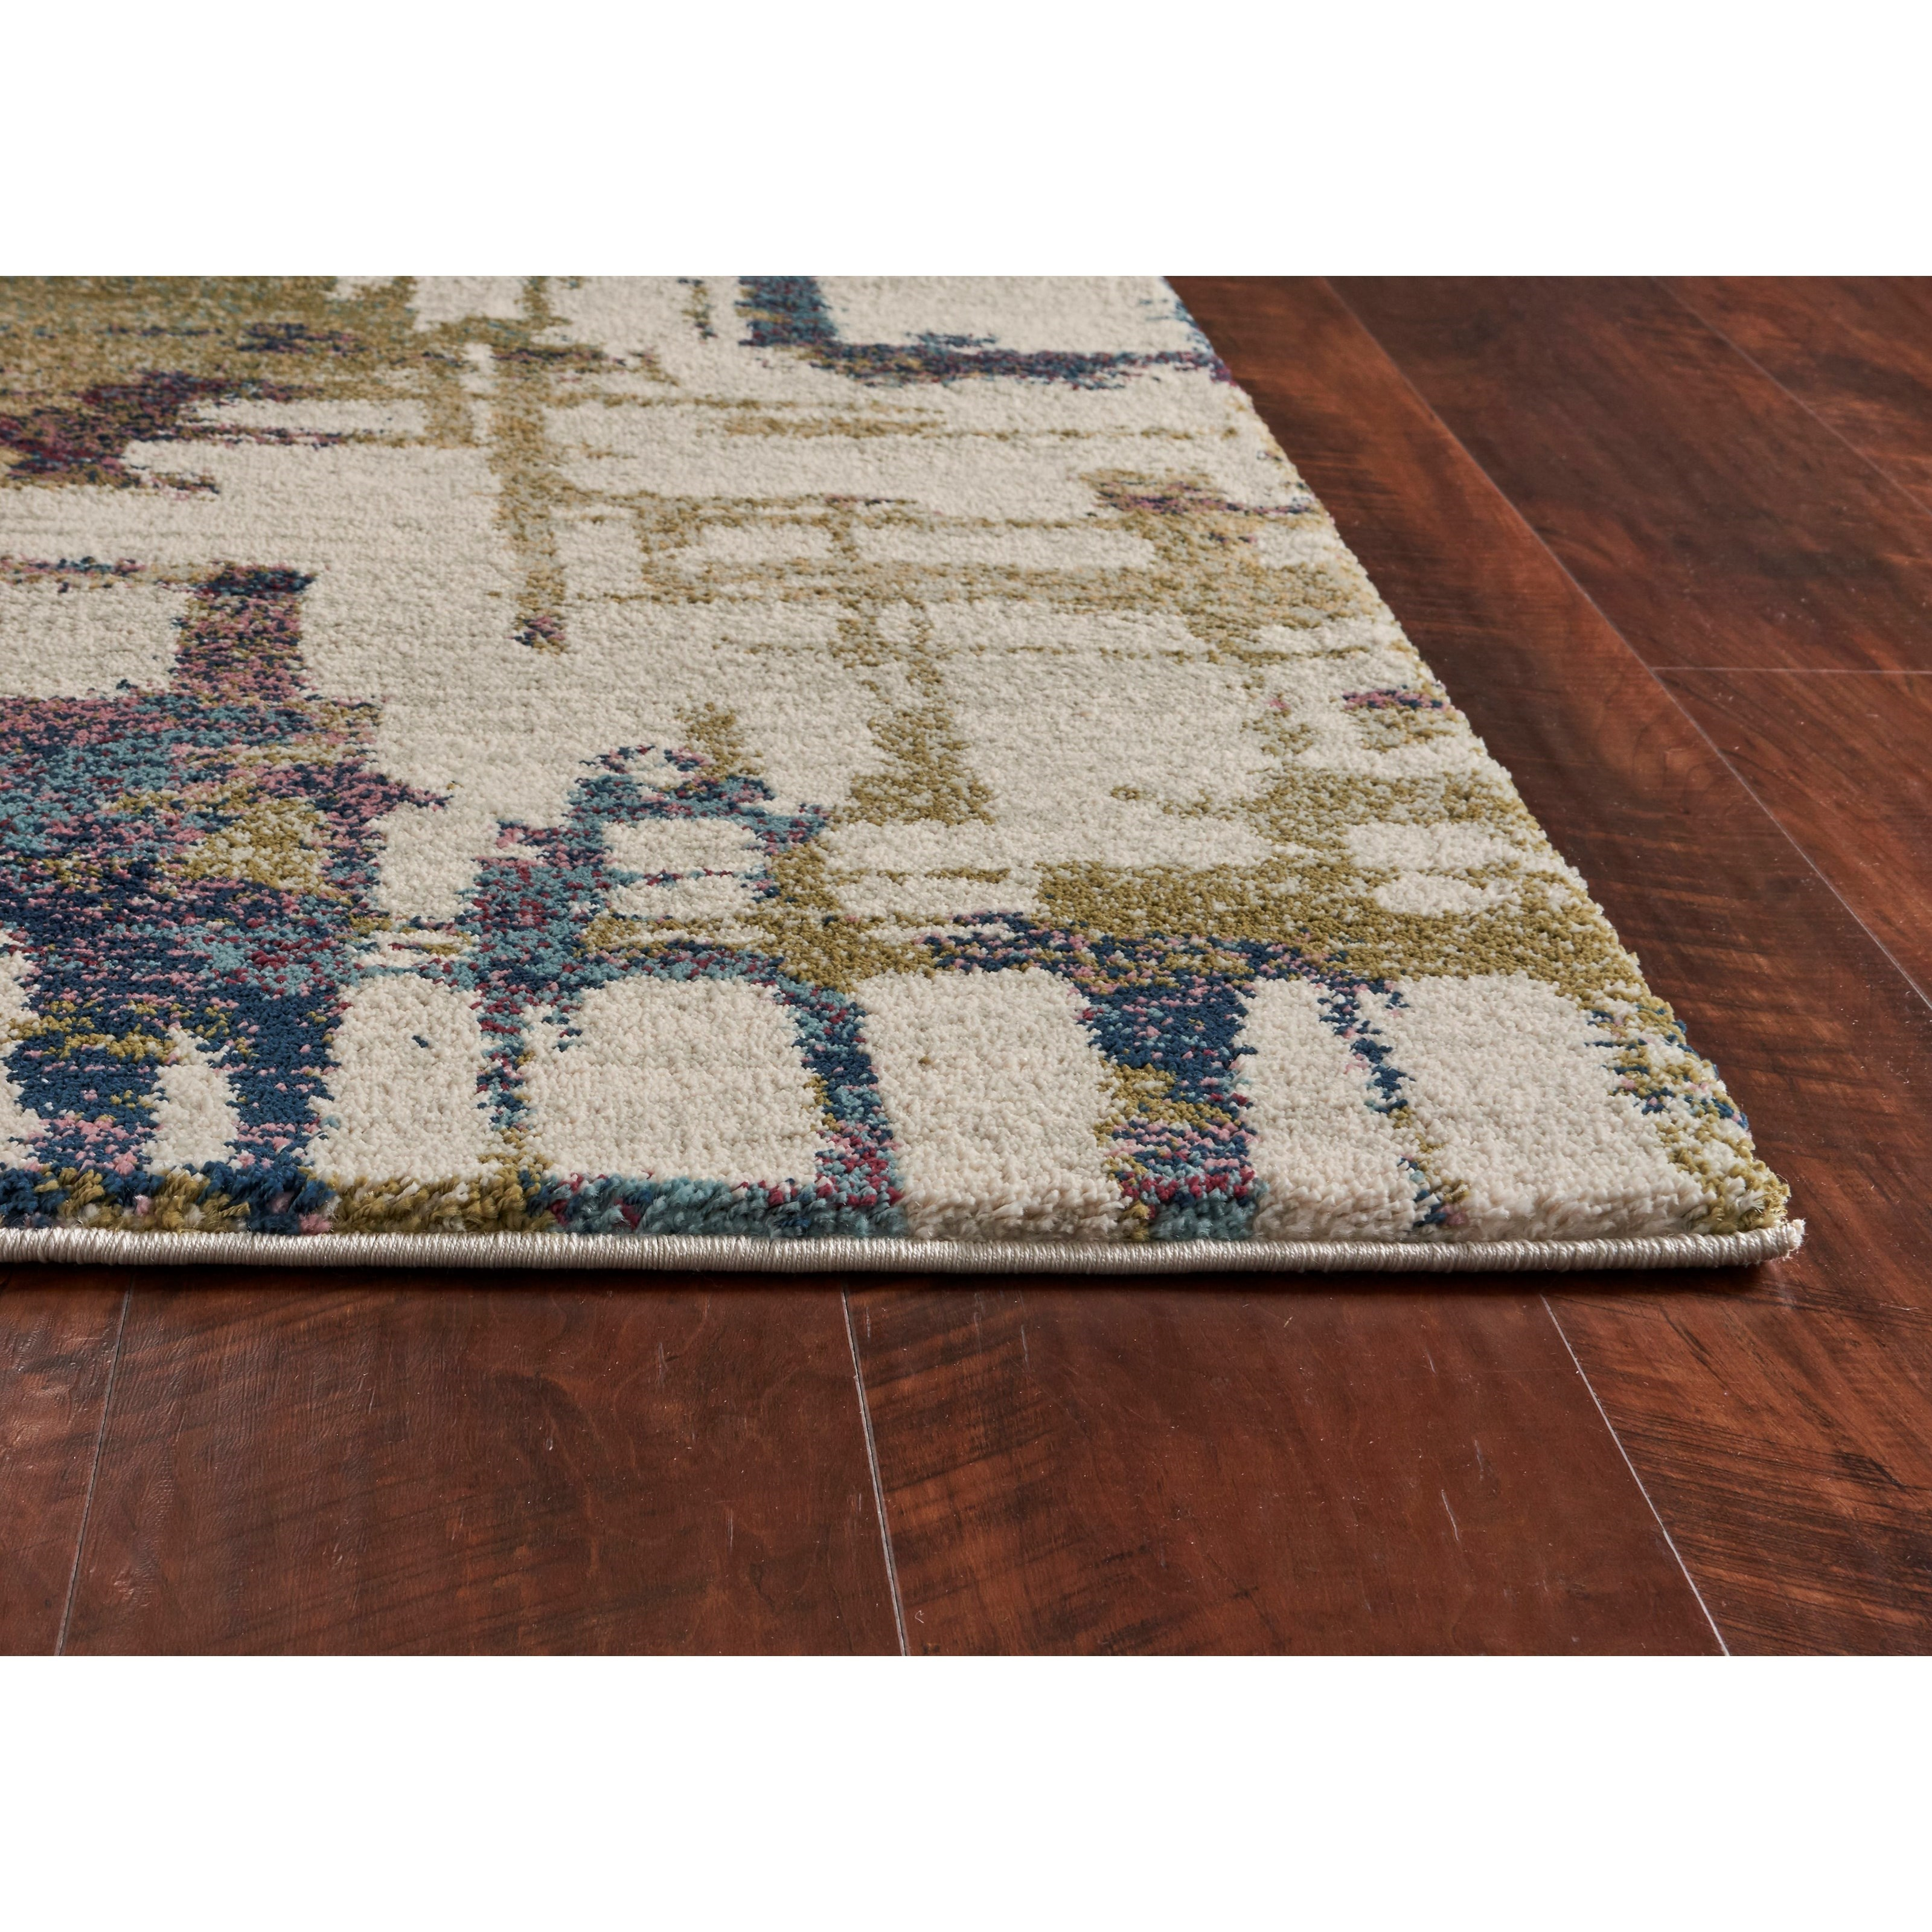 """Hue 2'2"""" x 7'6"""" Runner Ivory Cityscape Rug by Kas at Wilson's Furniture"""